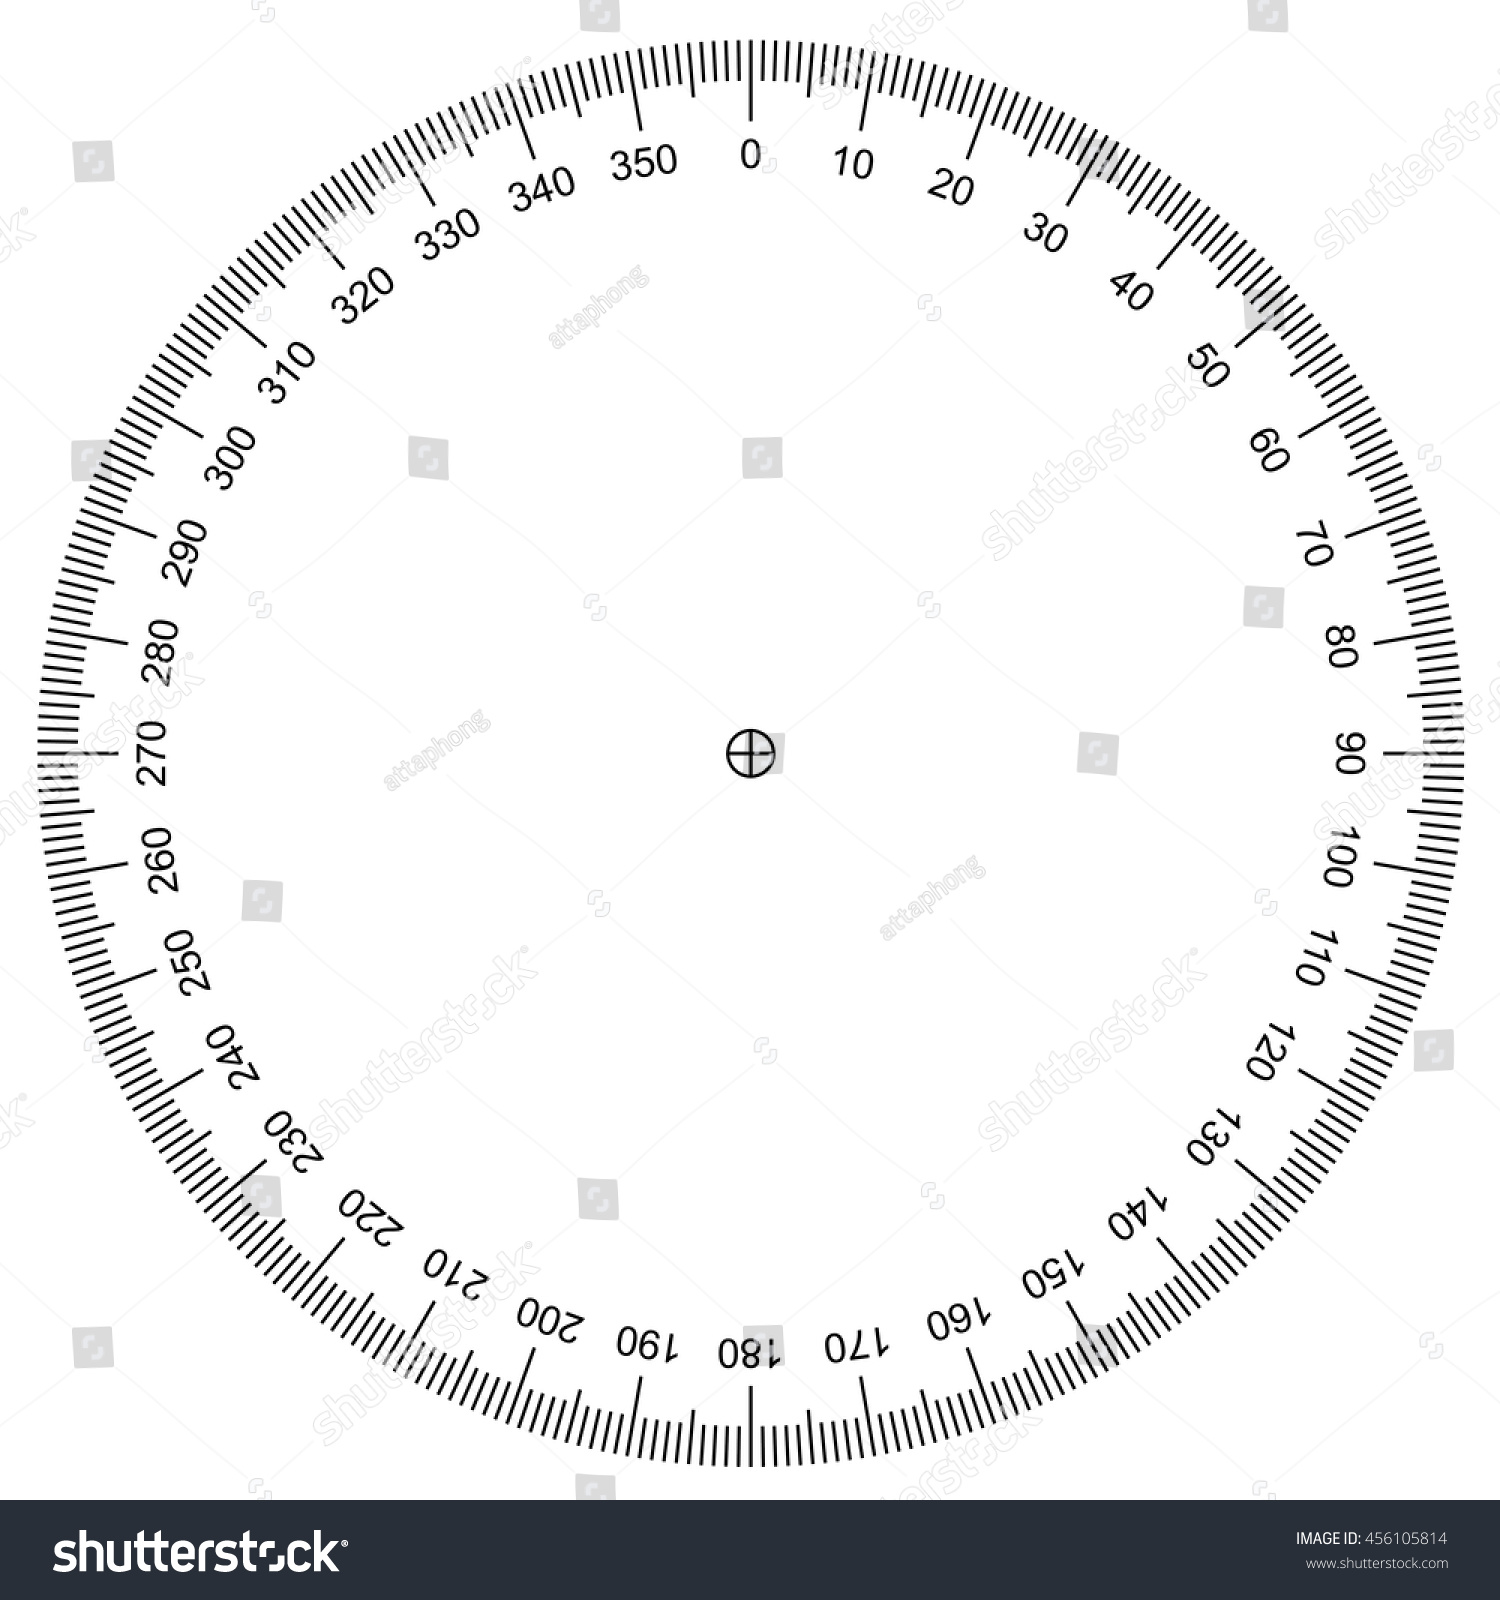 worksheet Protractor Print Out protractor print out slope y intercept worksheets pre algebra graduation vector 456105814 actual size 456105814srcffd5b32ihm9smrh8srkdaw 1 4 o